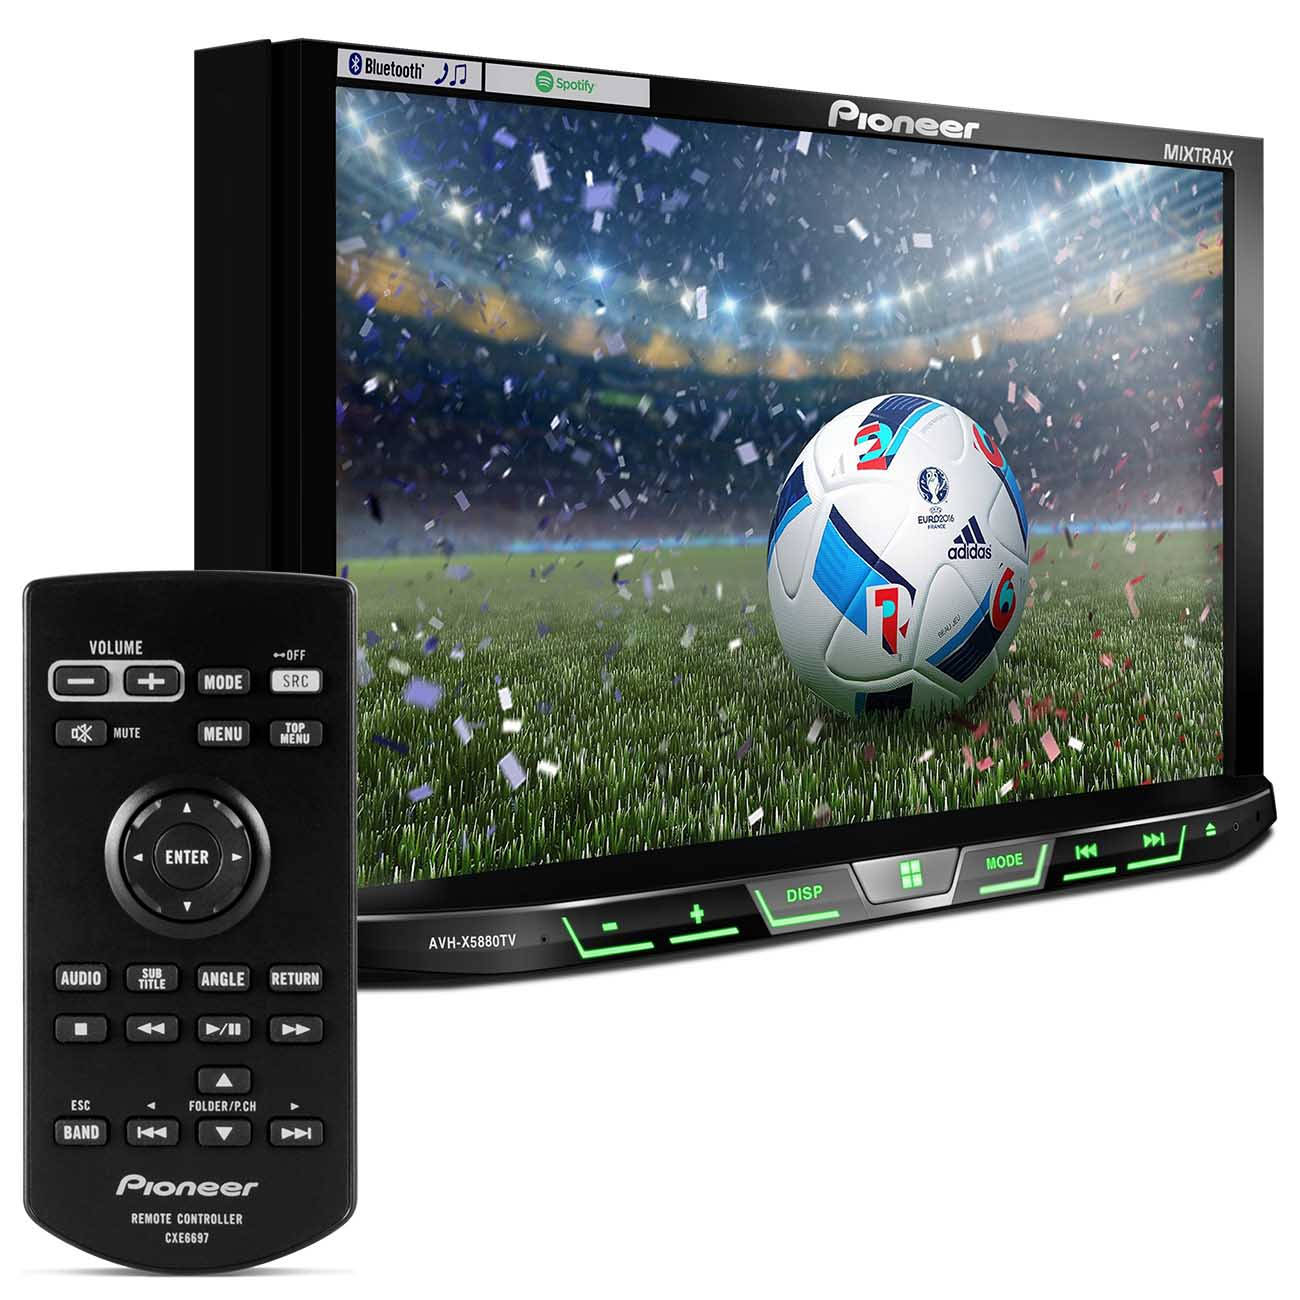 DVD Player Pioneer AVH - X5880TV 2 Din 7 Polegadas USB Iphone Android Mixtrax Spotify